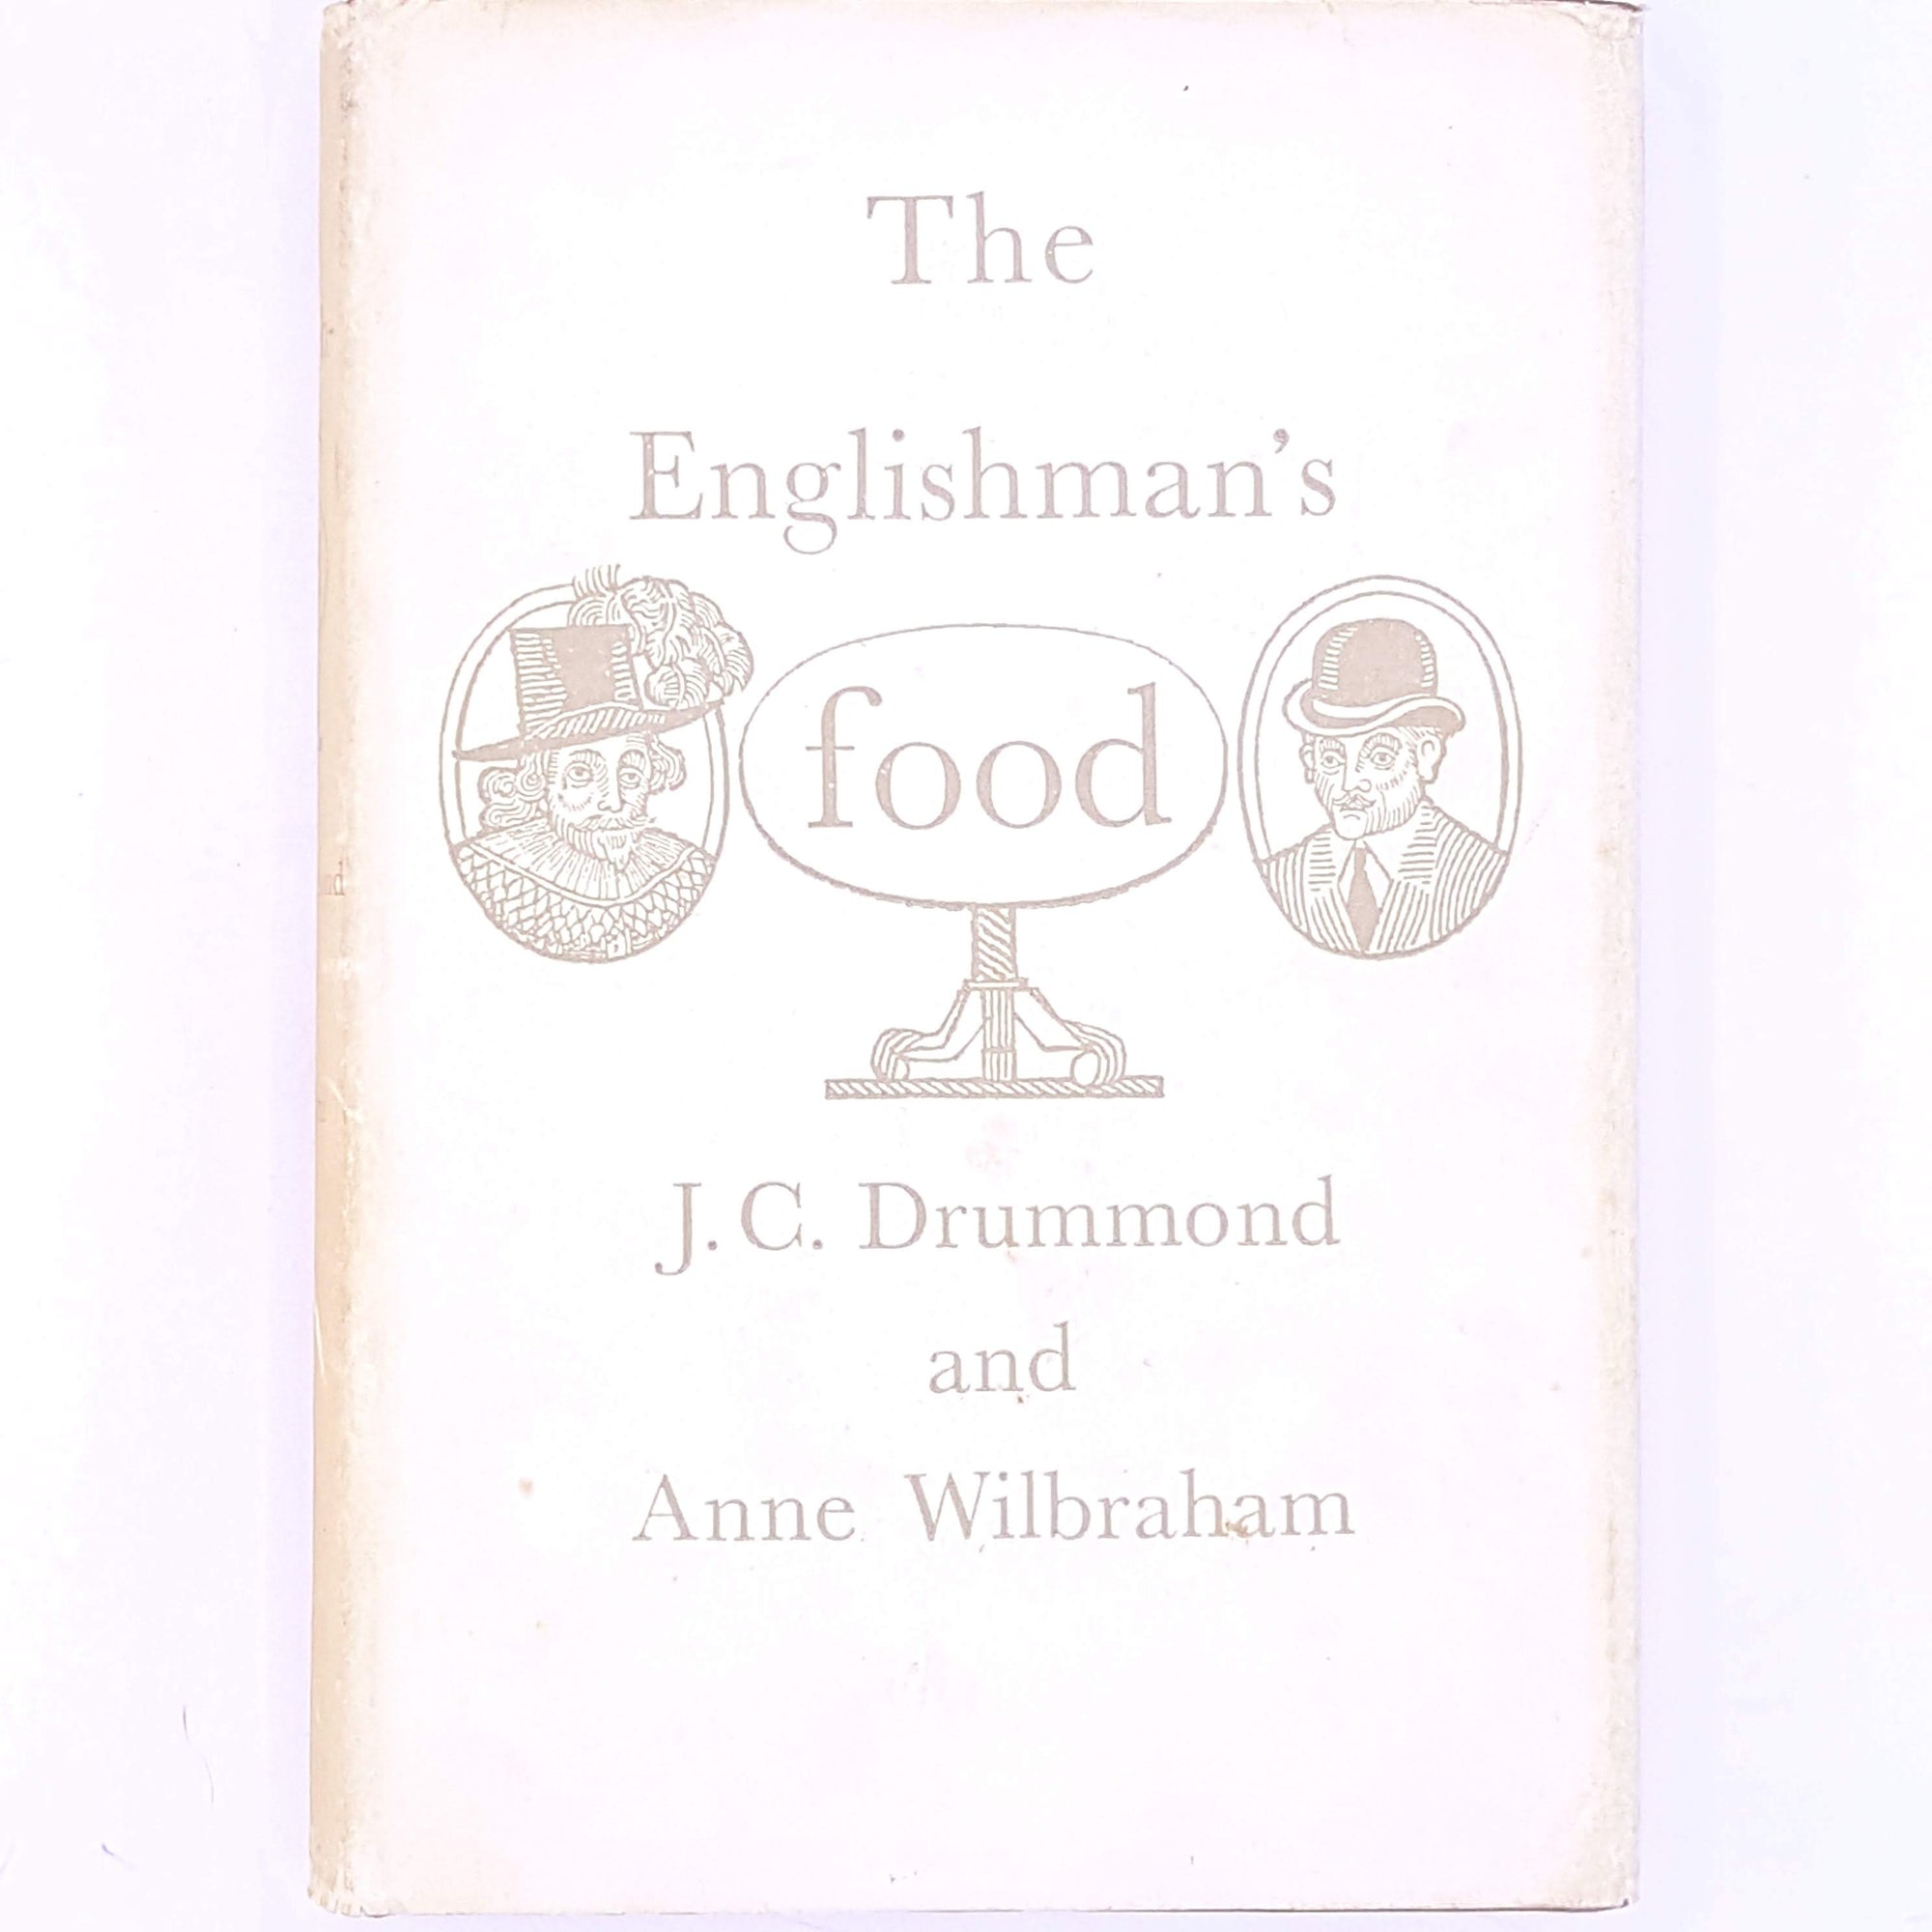 The Englishman's Food, J.C. Drummond & Anne Wilbraham